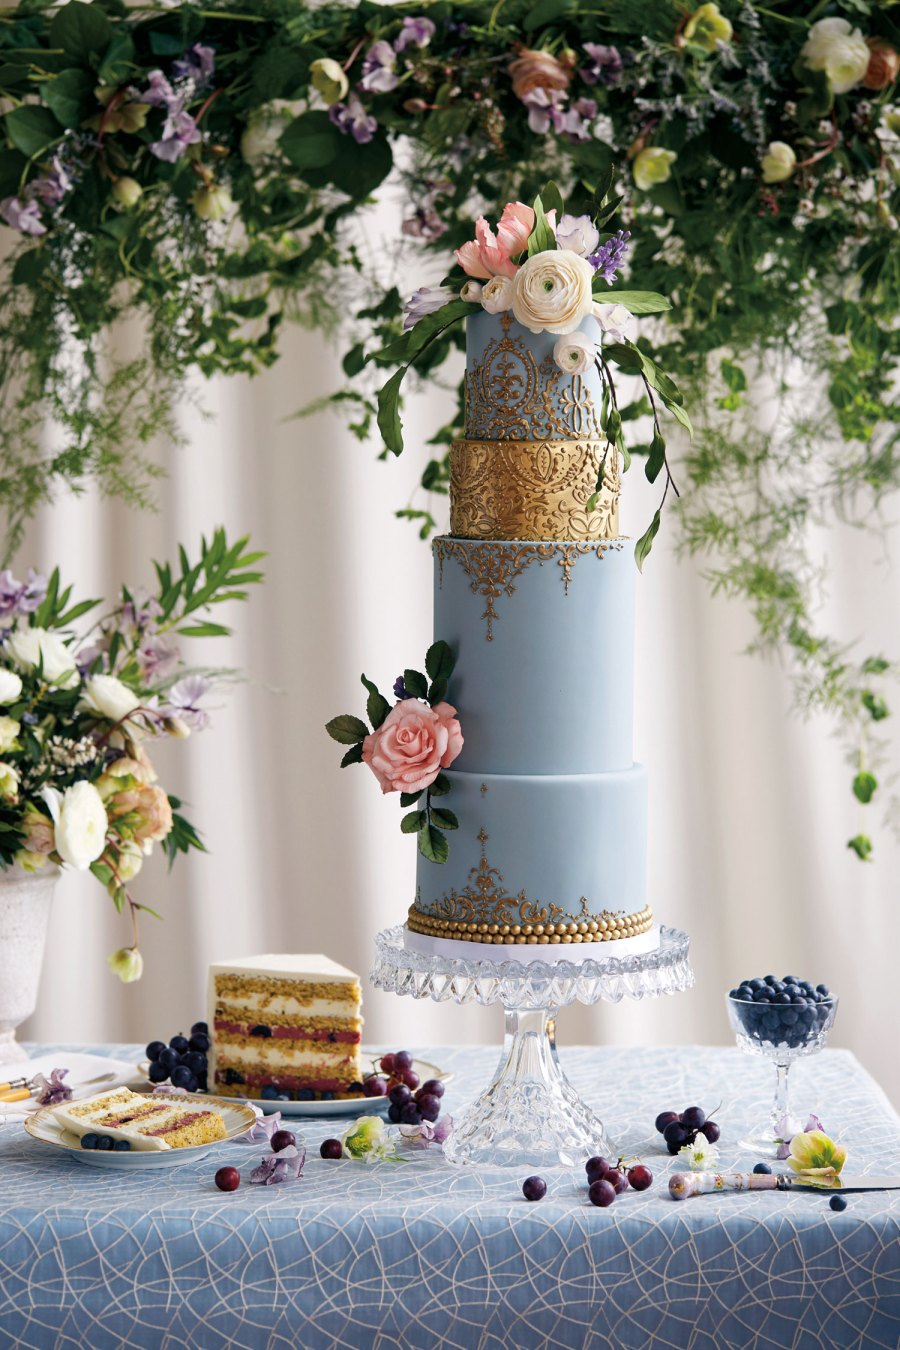 SMBG_0617_Desserts_Met-Bride-and-Groom-201716096-web.jpg